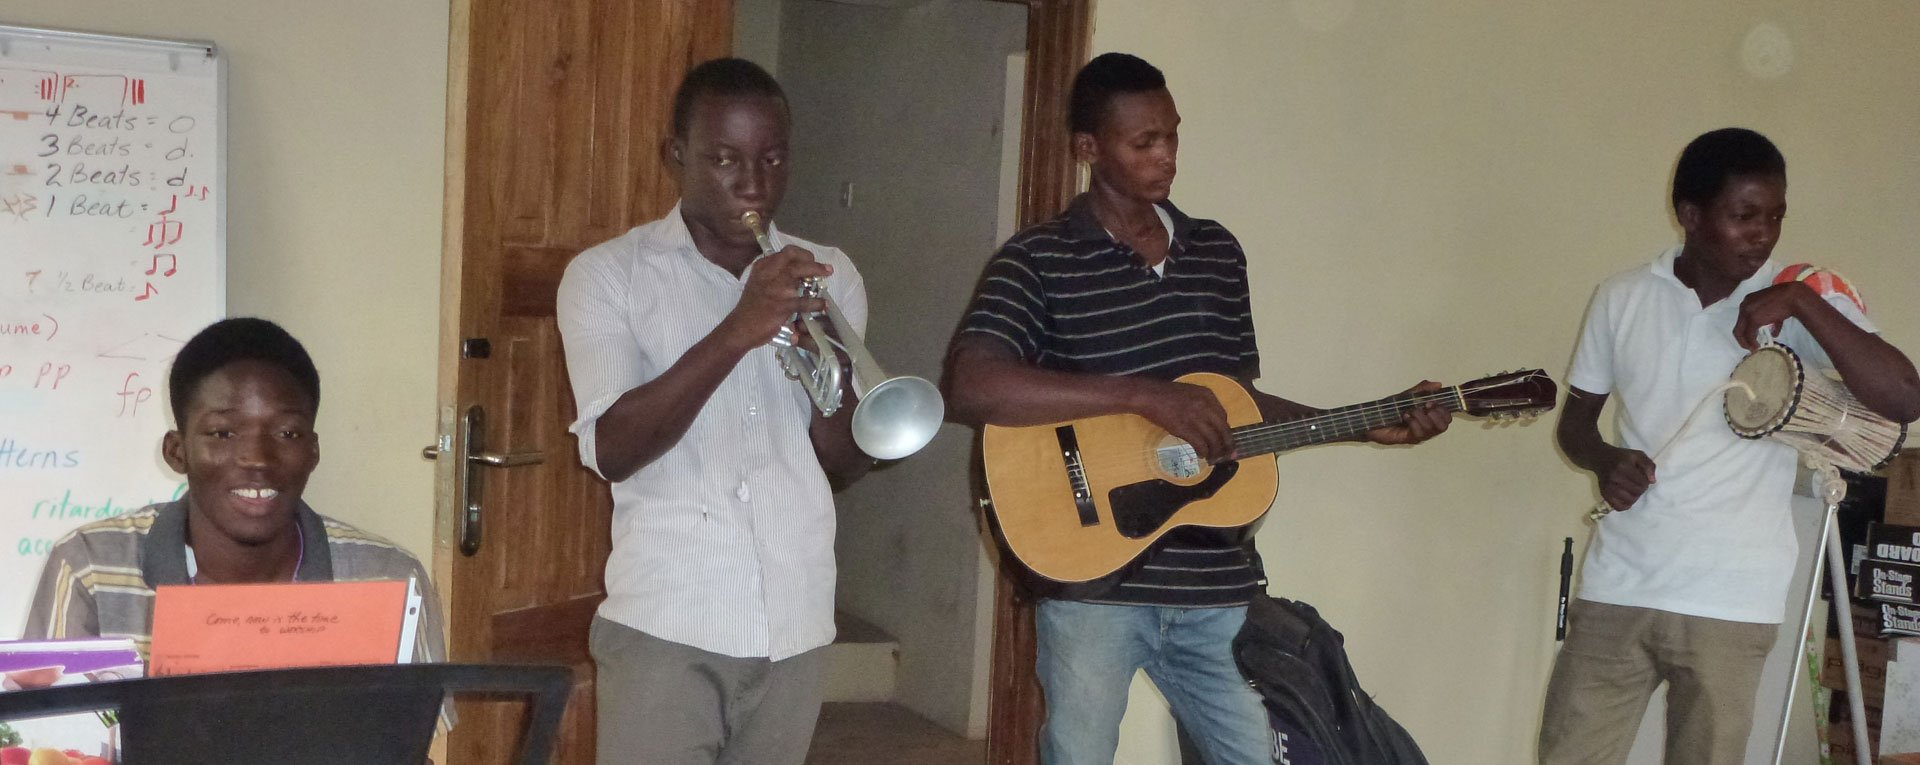 student band playing at egbe music school